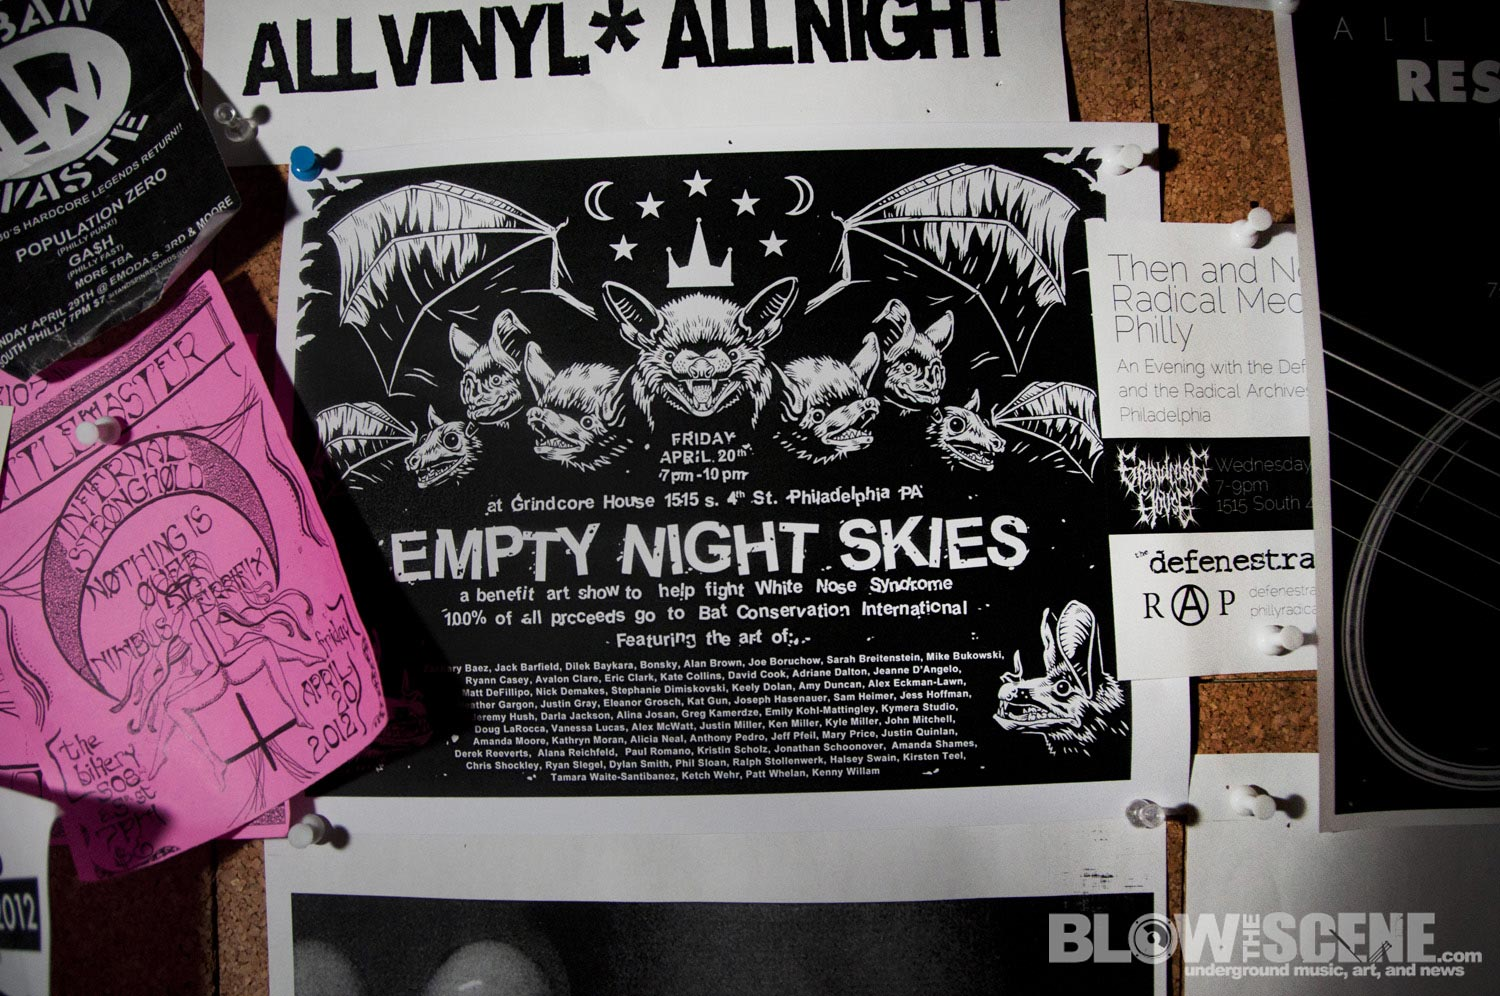 Empty Night Skies - Art Show Benefit For Bats -